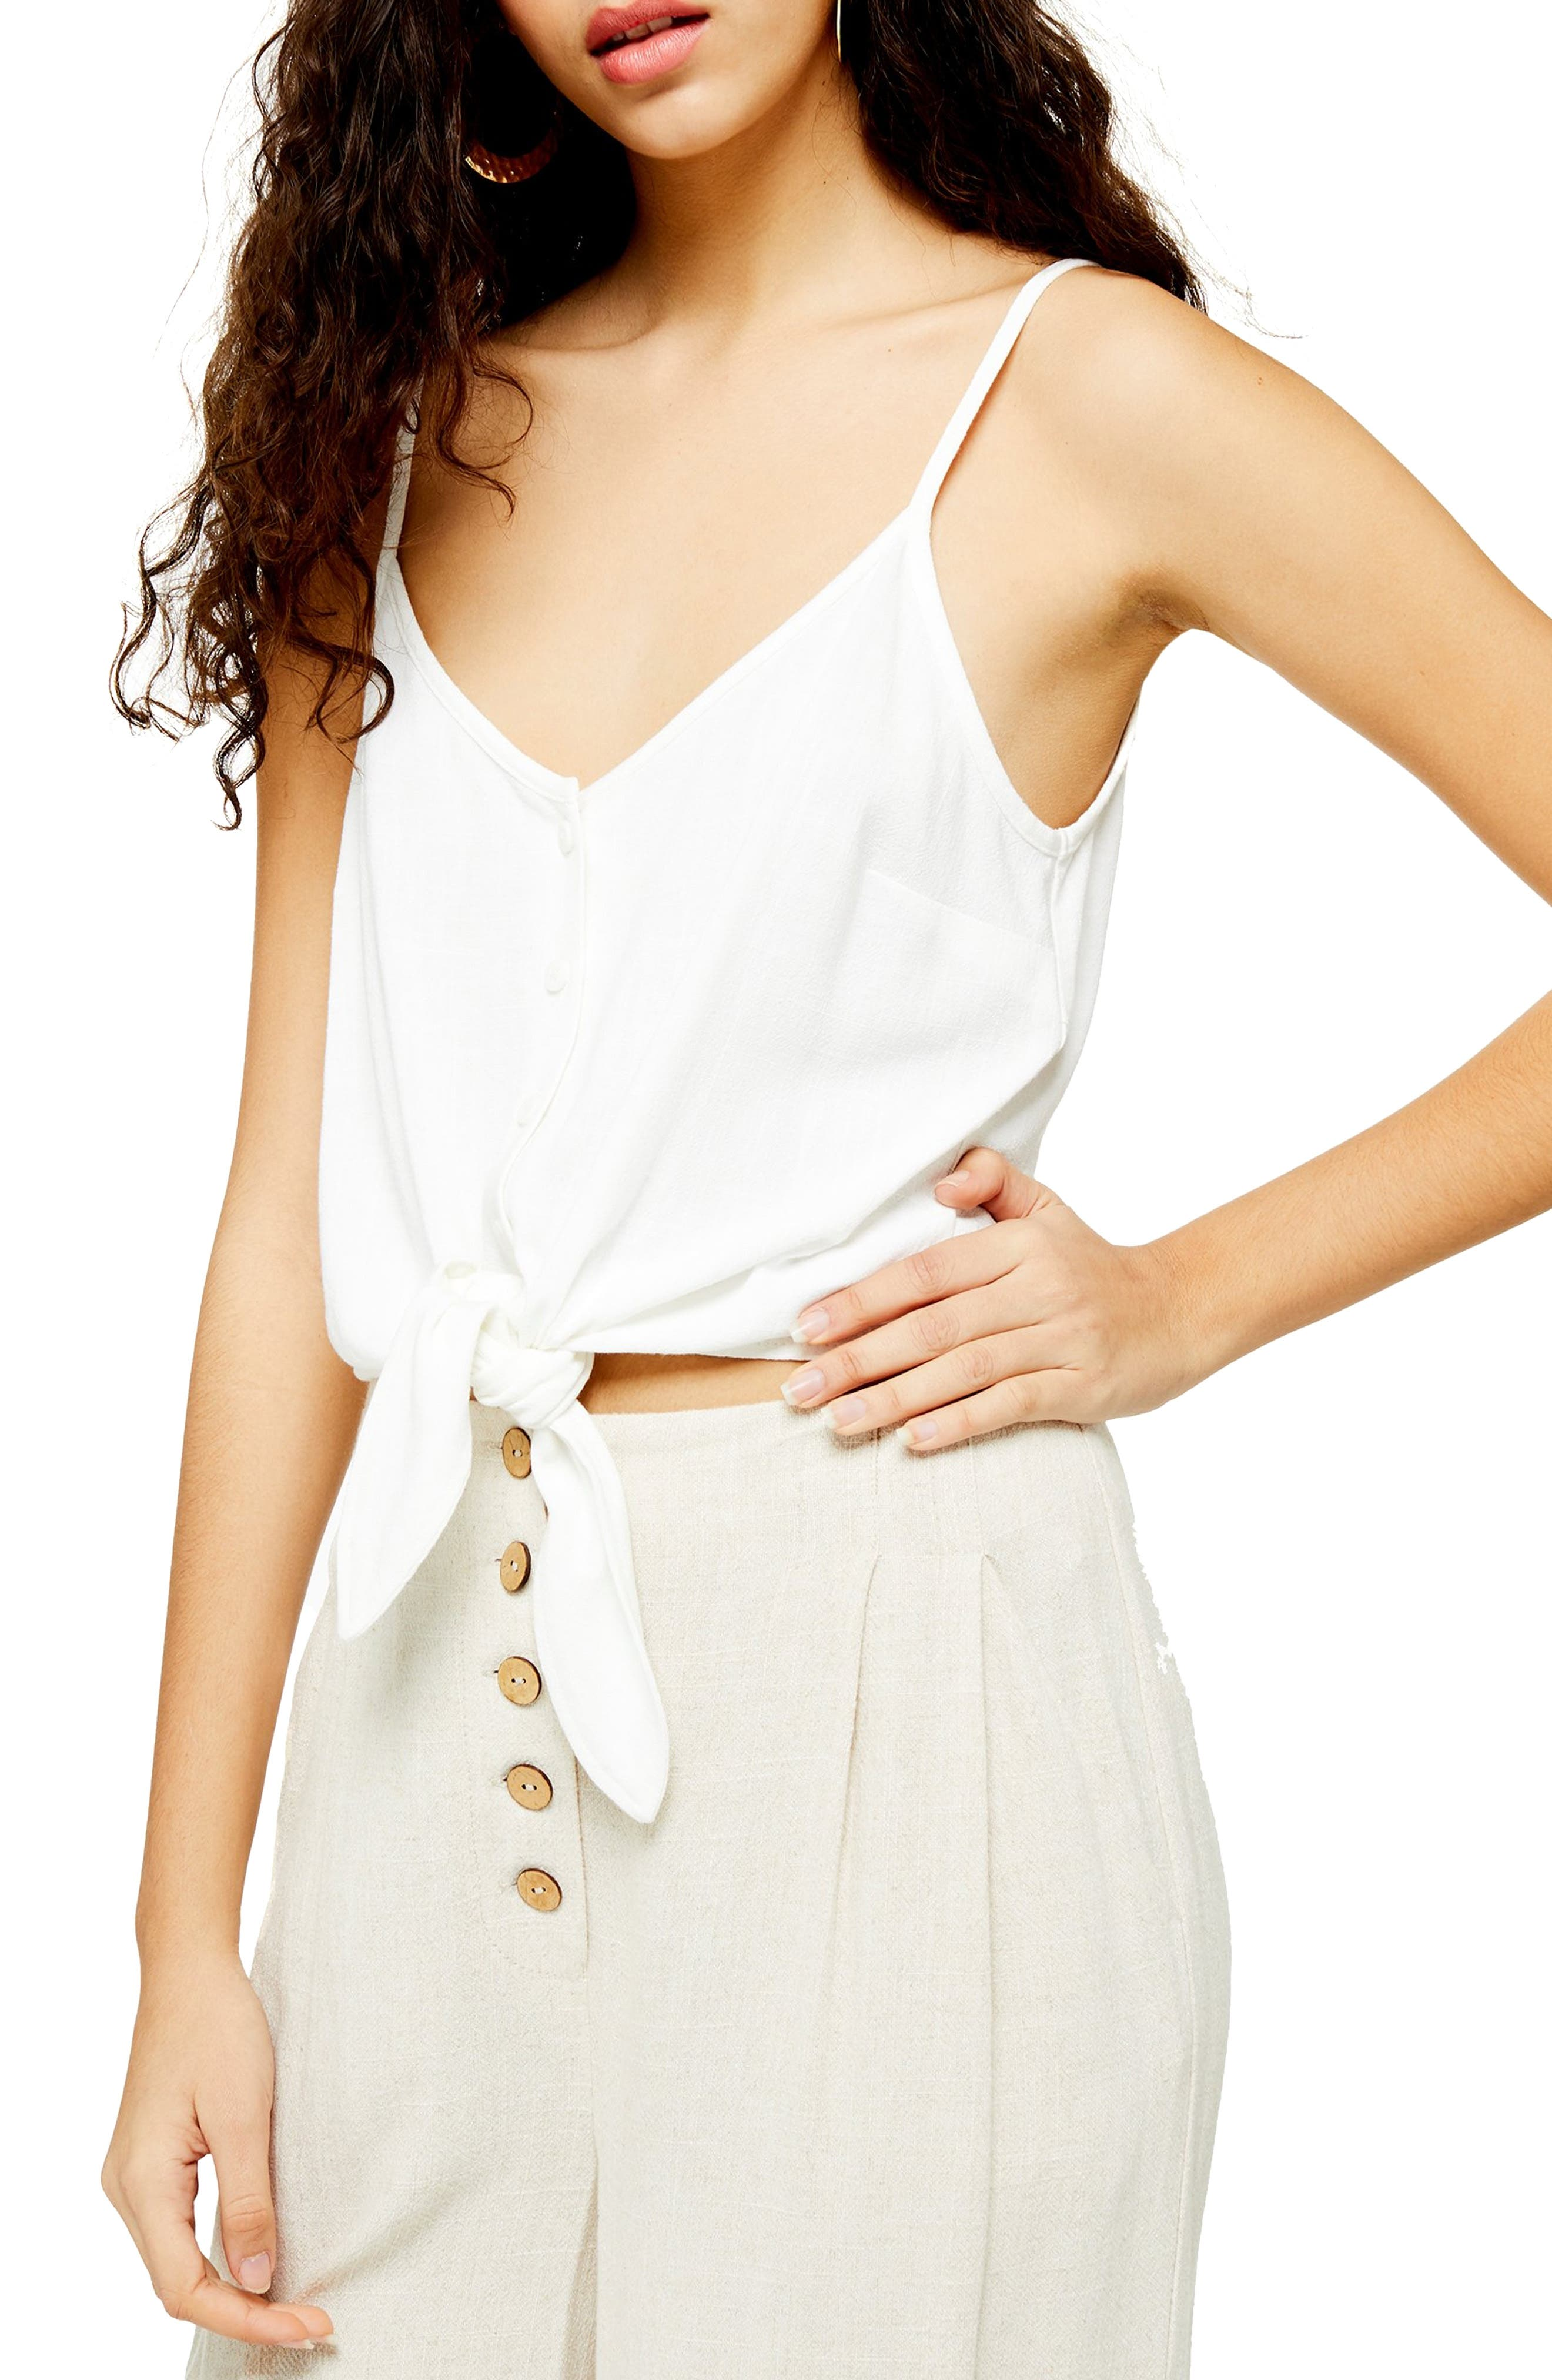 Topshop Polly Tie Front Camisole, US (fits like 14) - Ivory